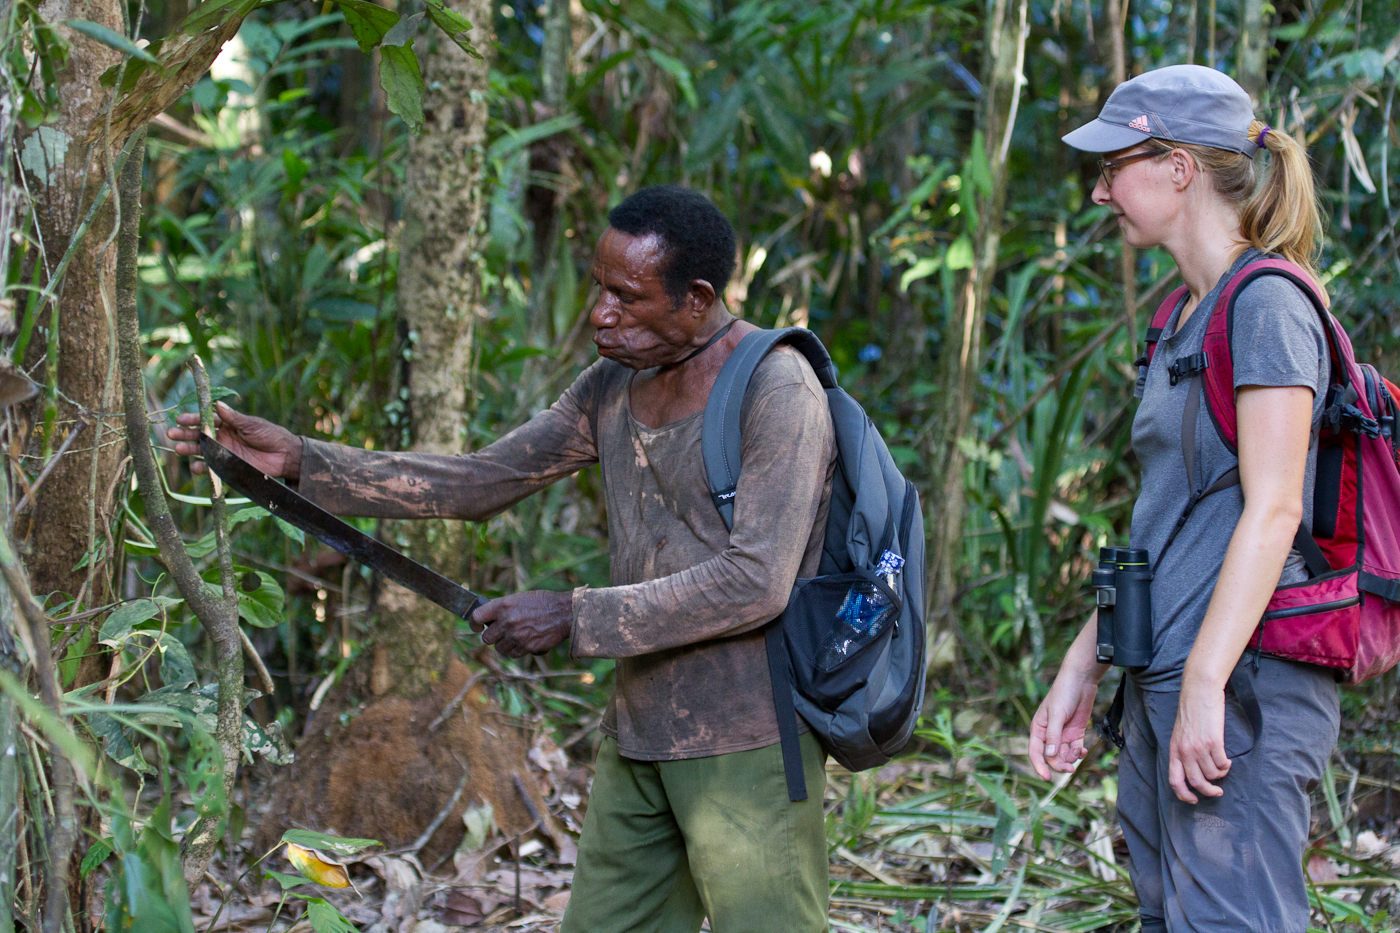 Pak Martinus teaches Manu to use a machete. Martinus could take out whole trees with that thing.